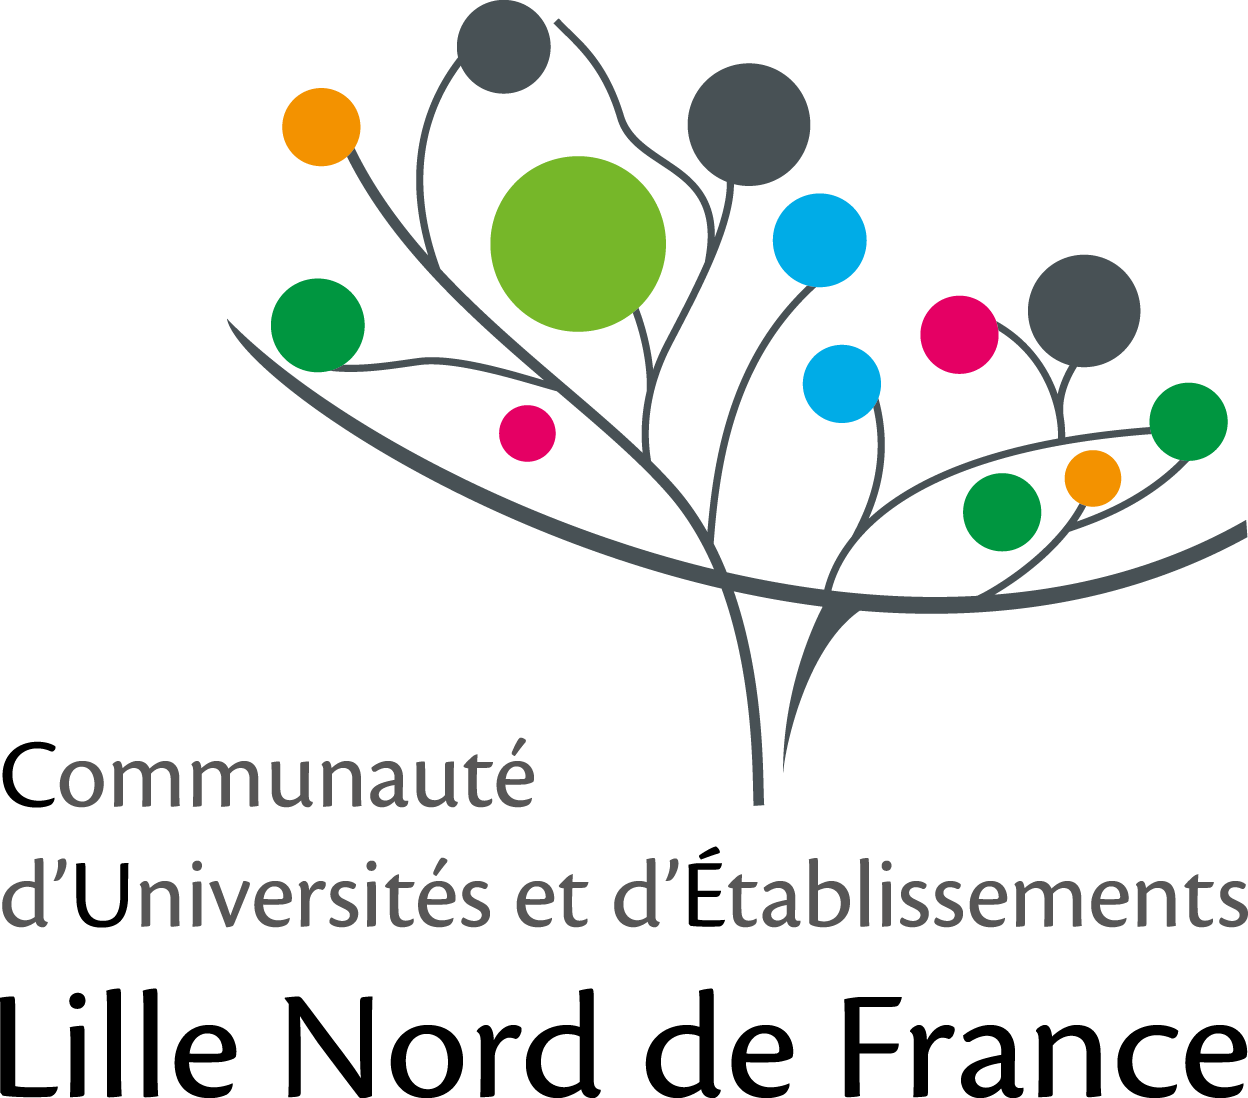 Site rencontre universitaire